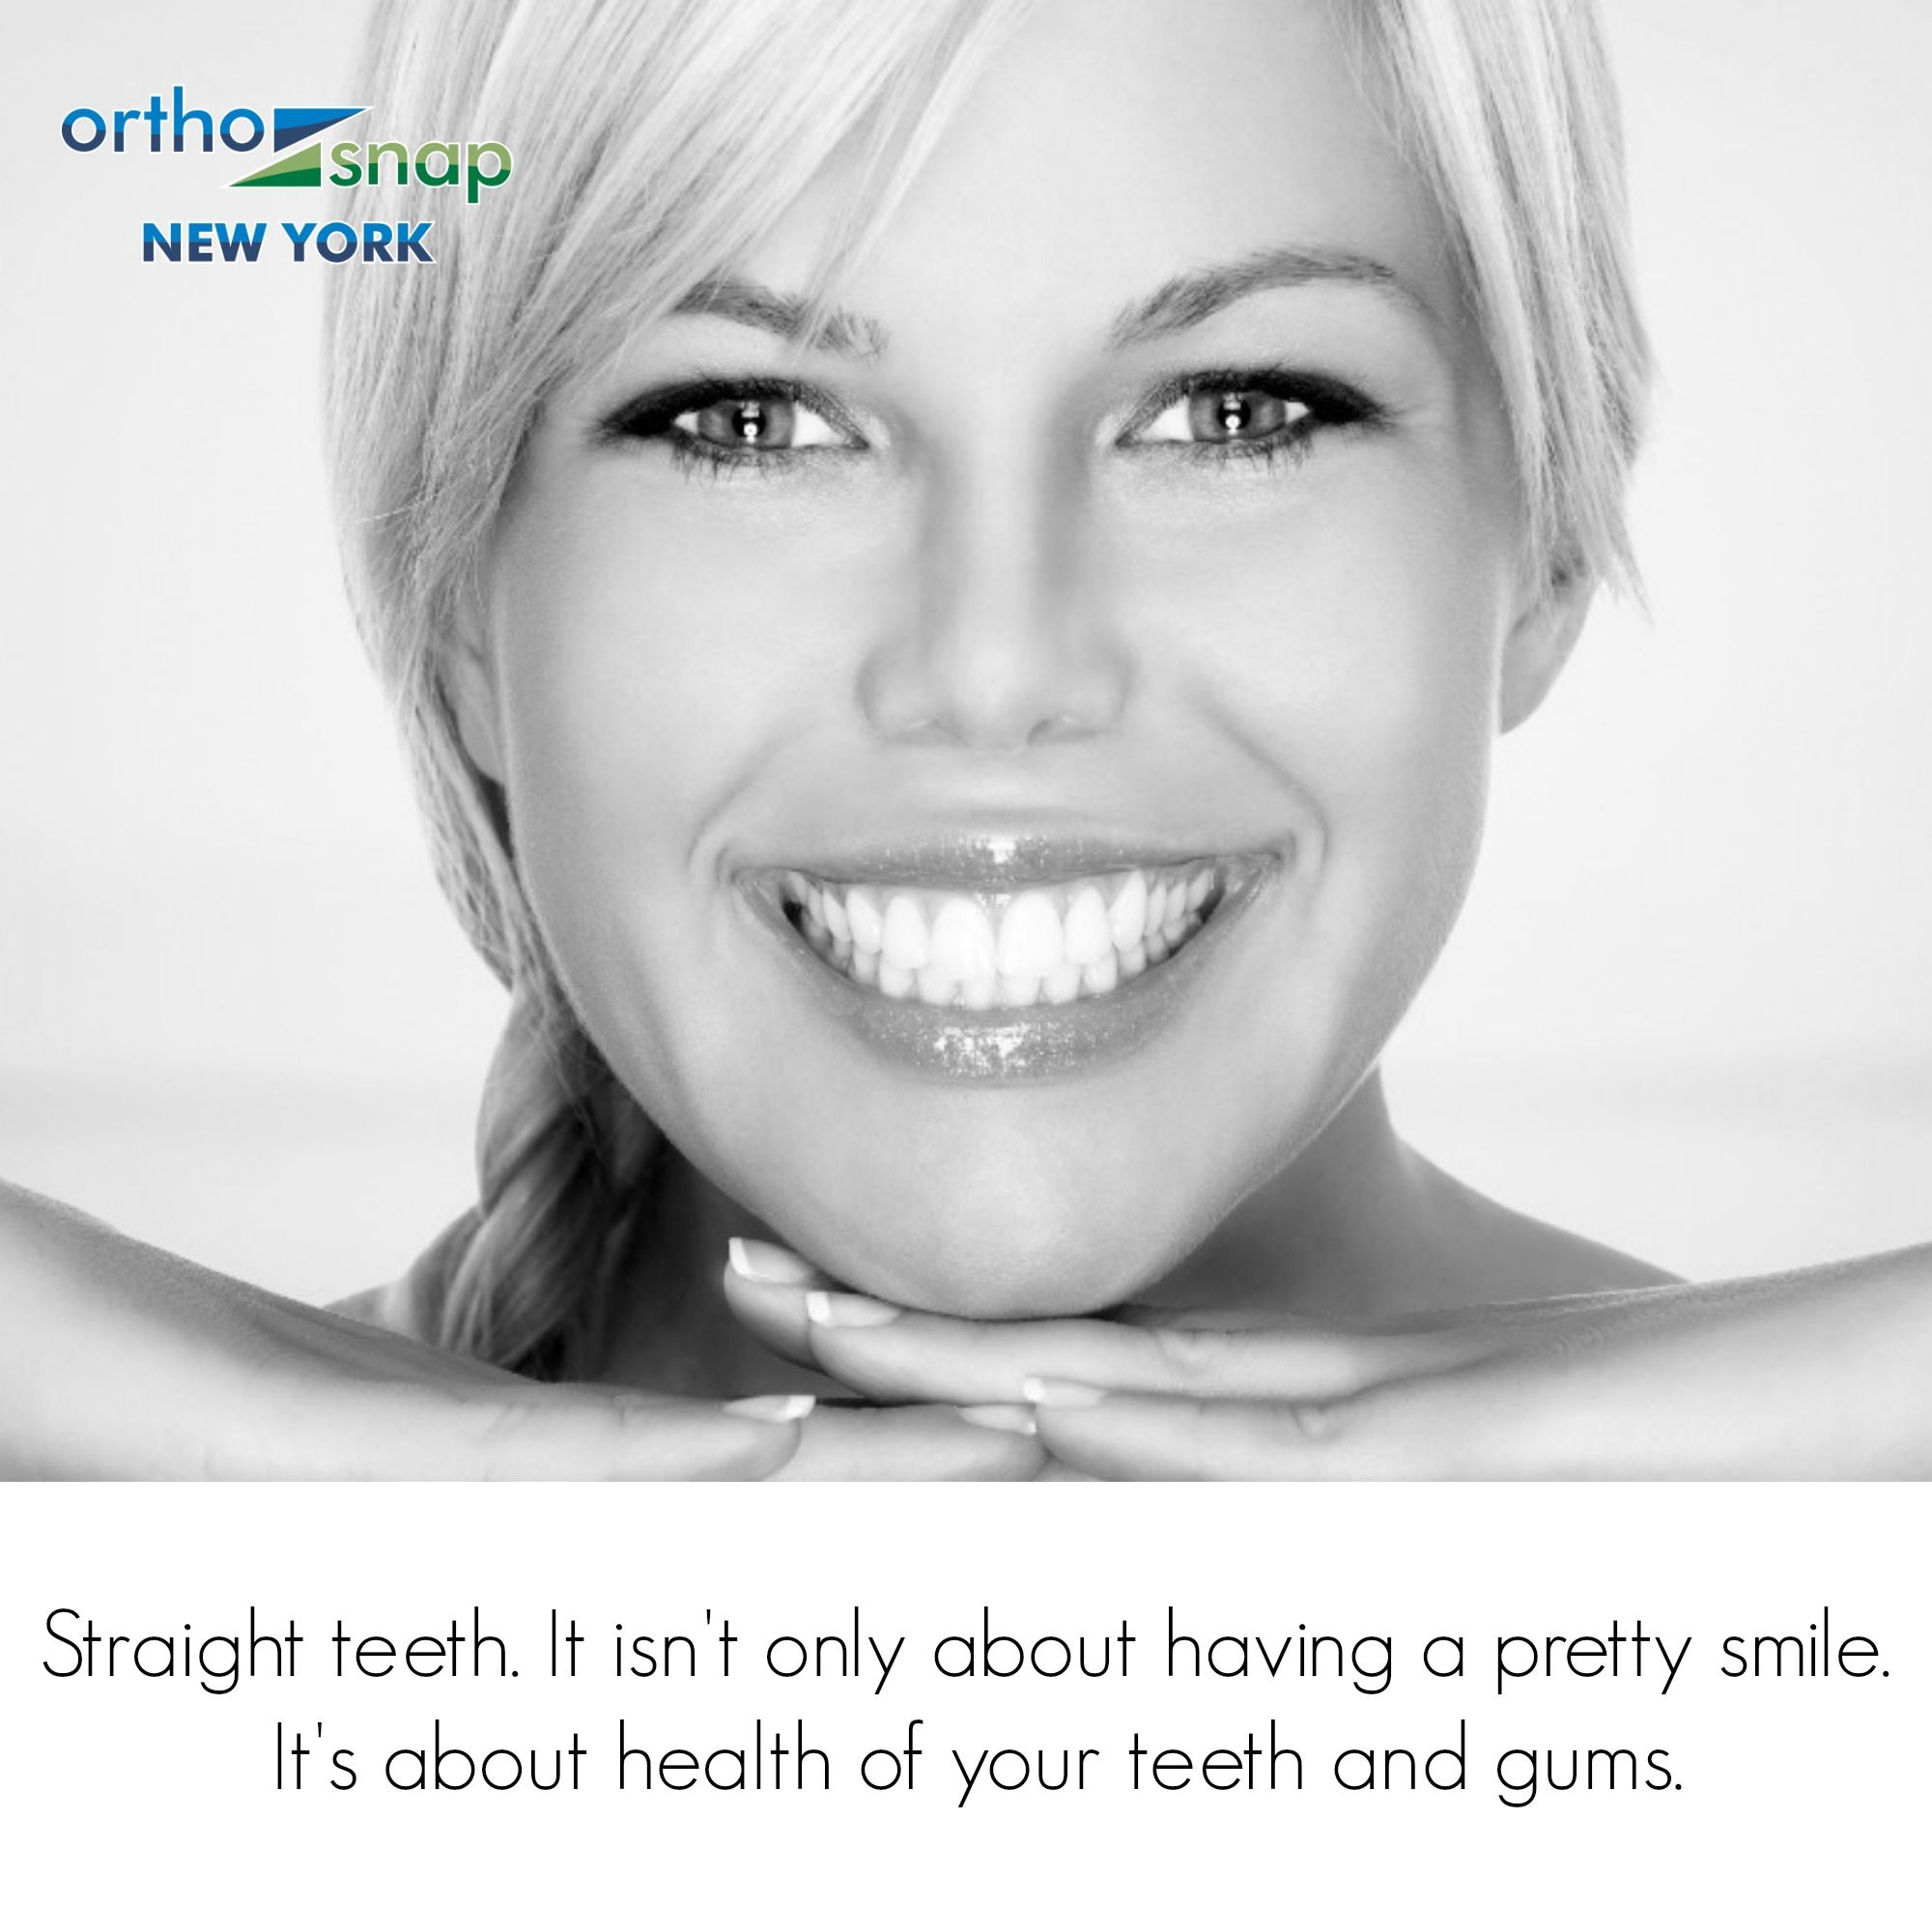 ..and now you can STRAIGHTEN TEETH without unsightly and